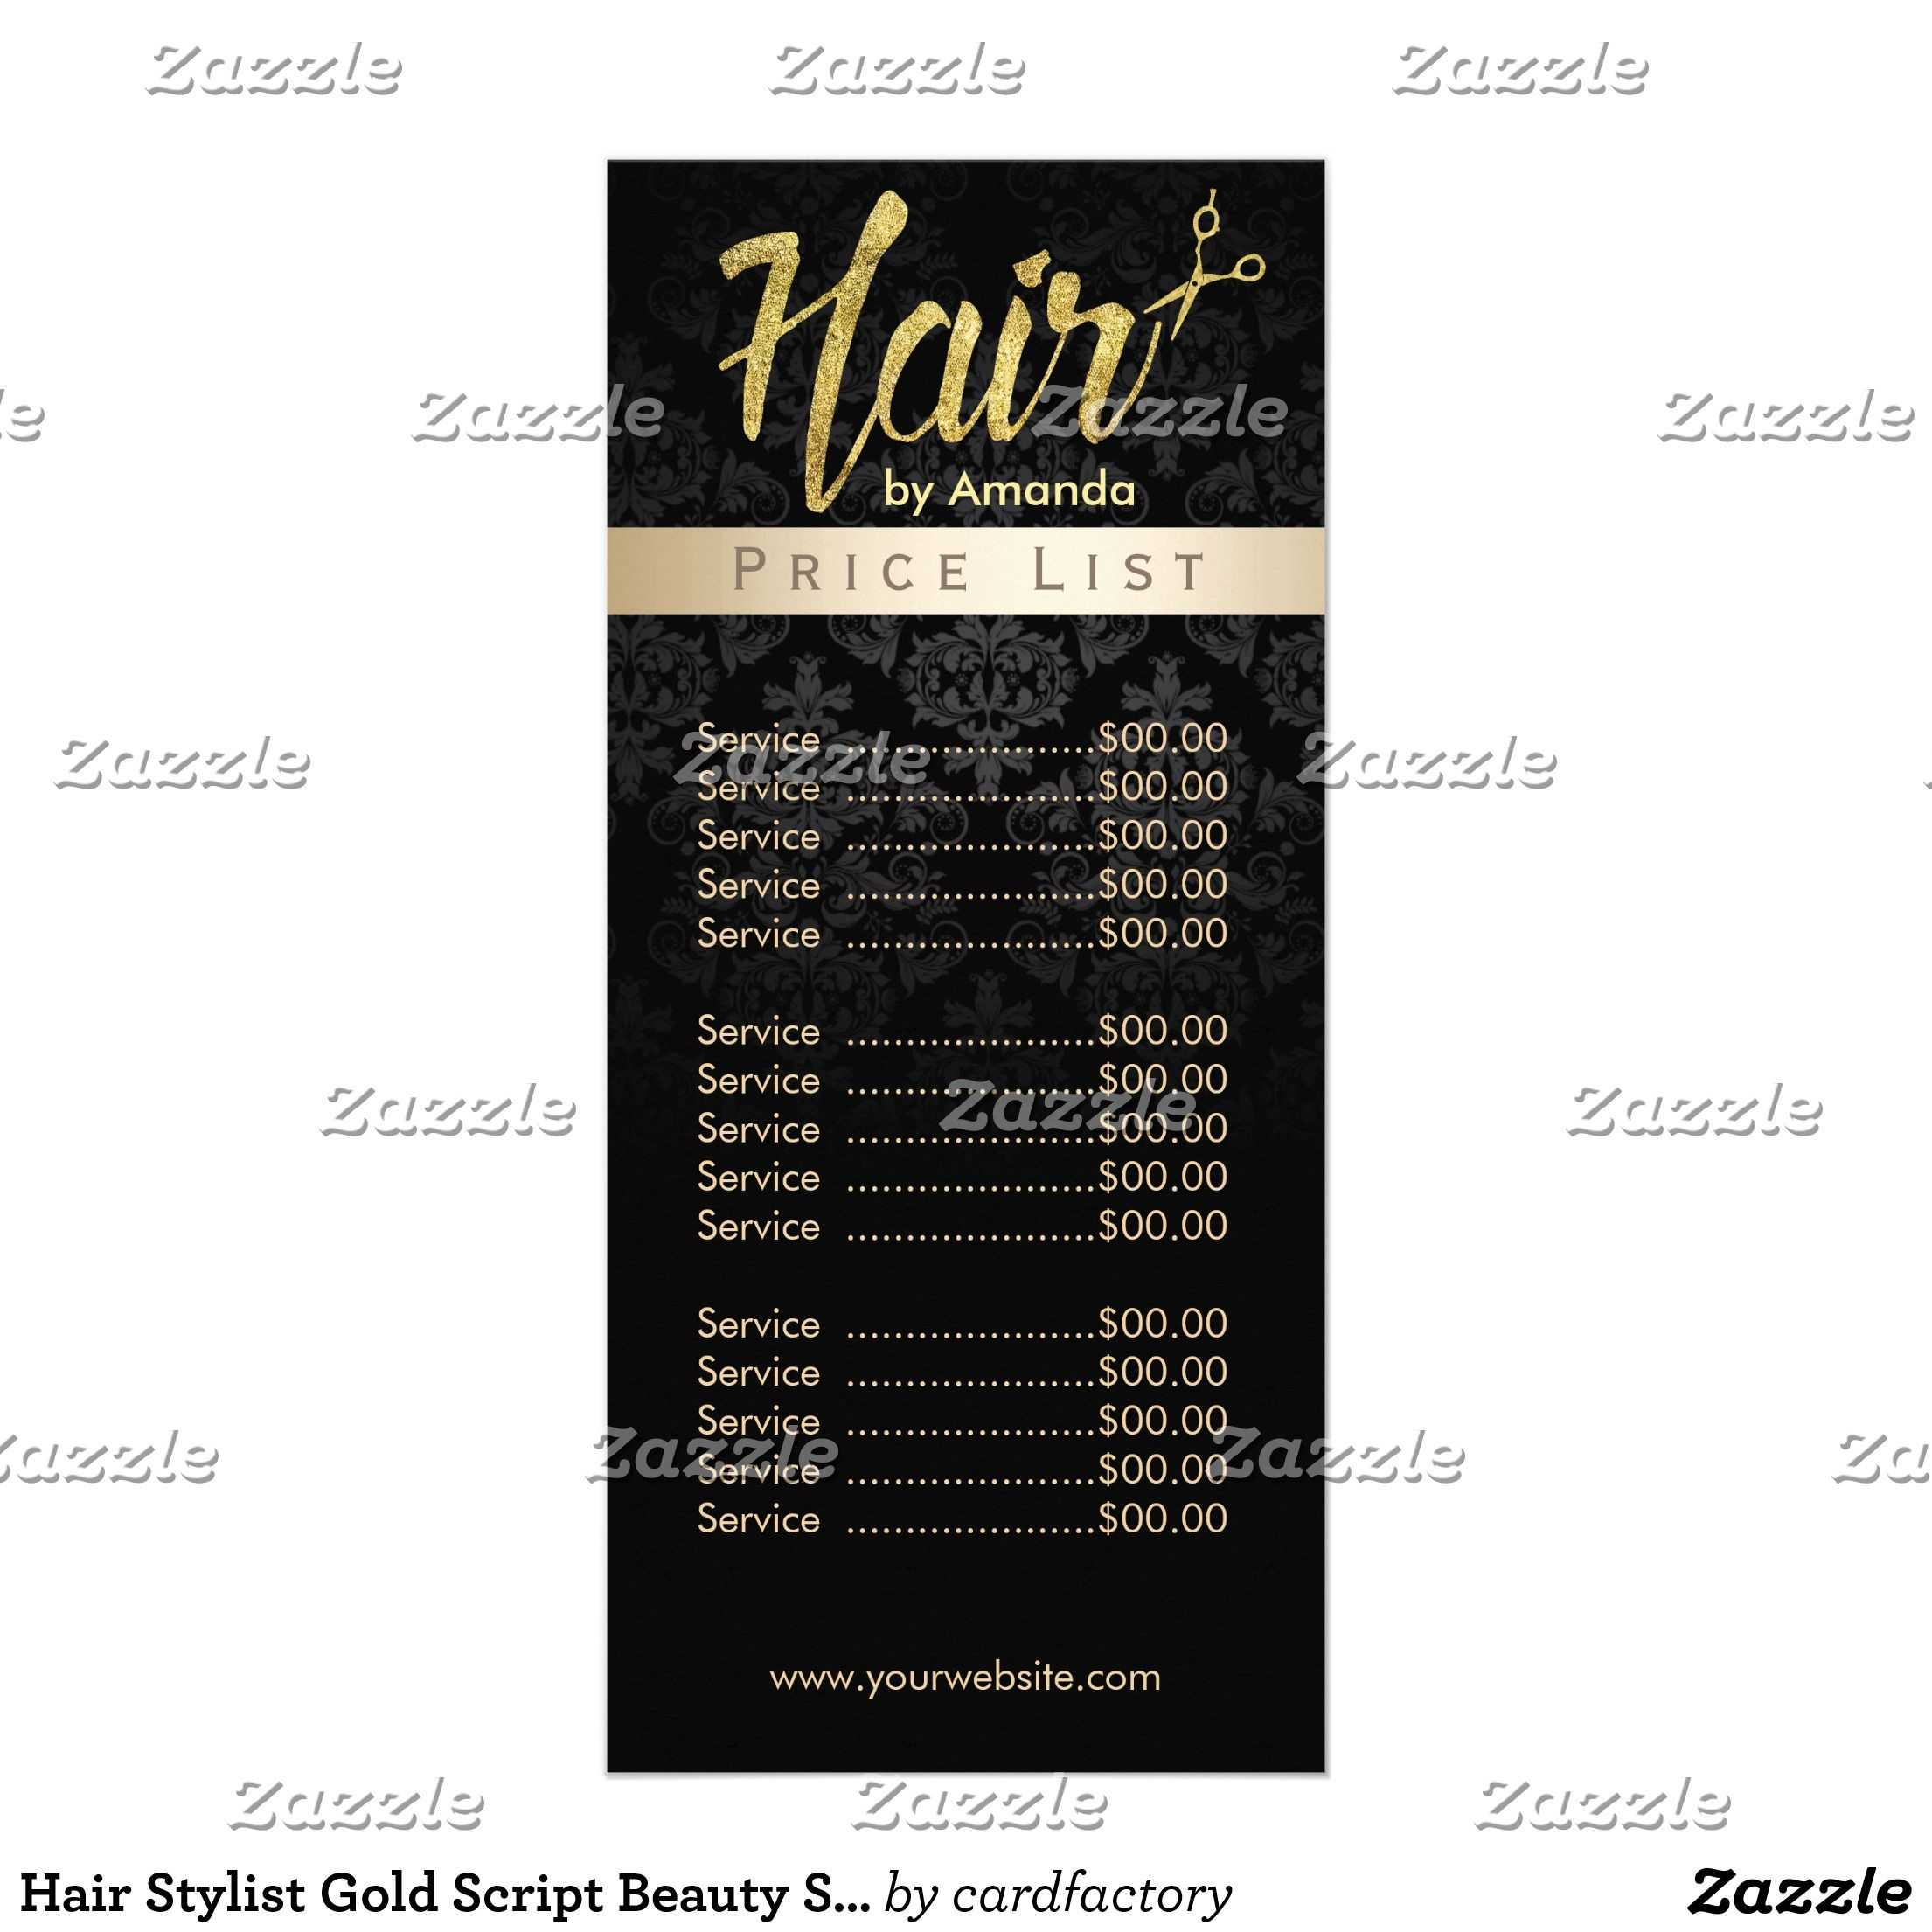 Beauty Salon Prices Hair Stylist Gold Script Beauty Salon Price List Rack Card